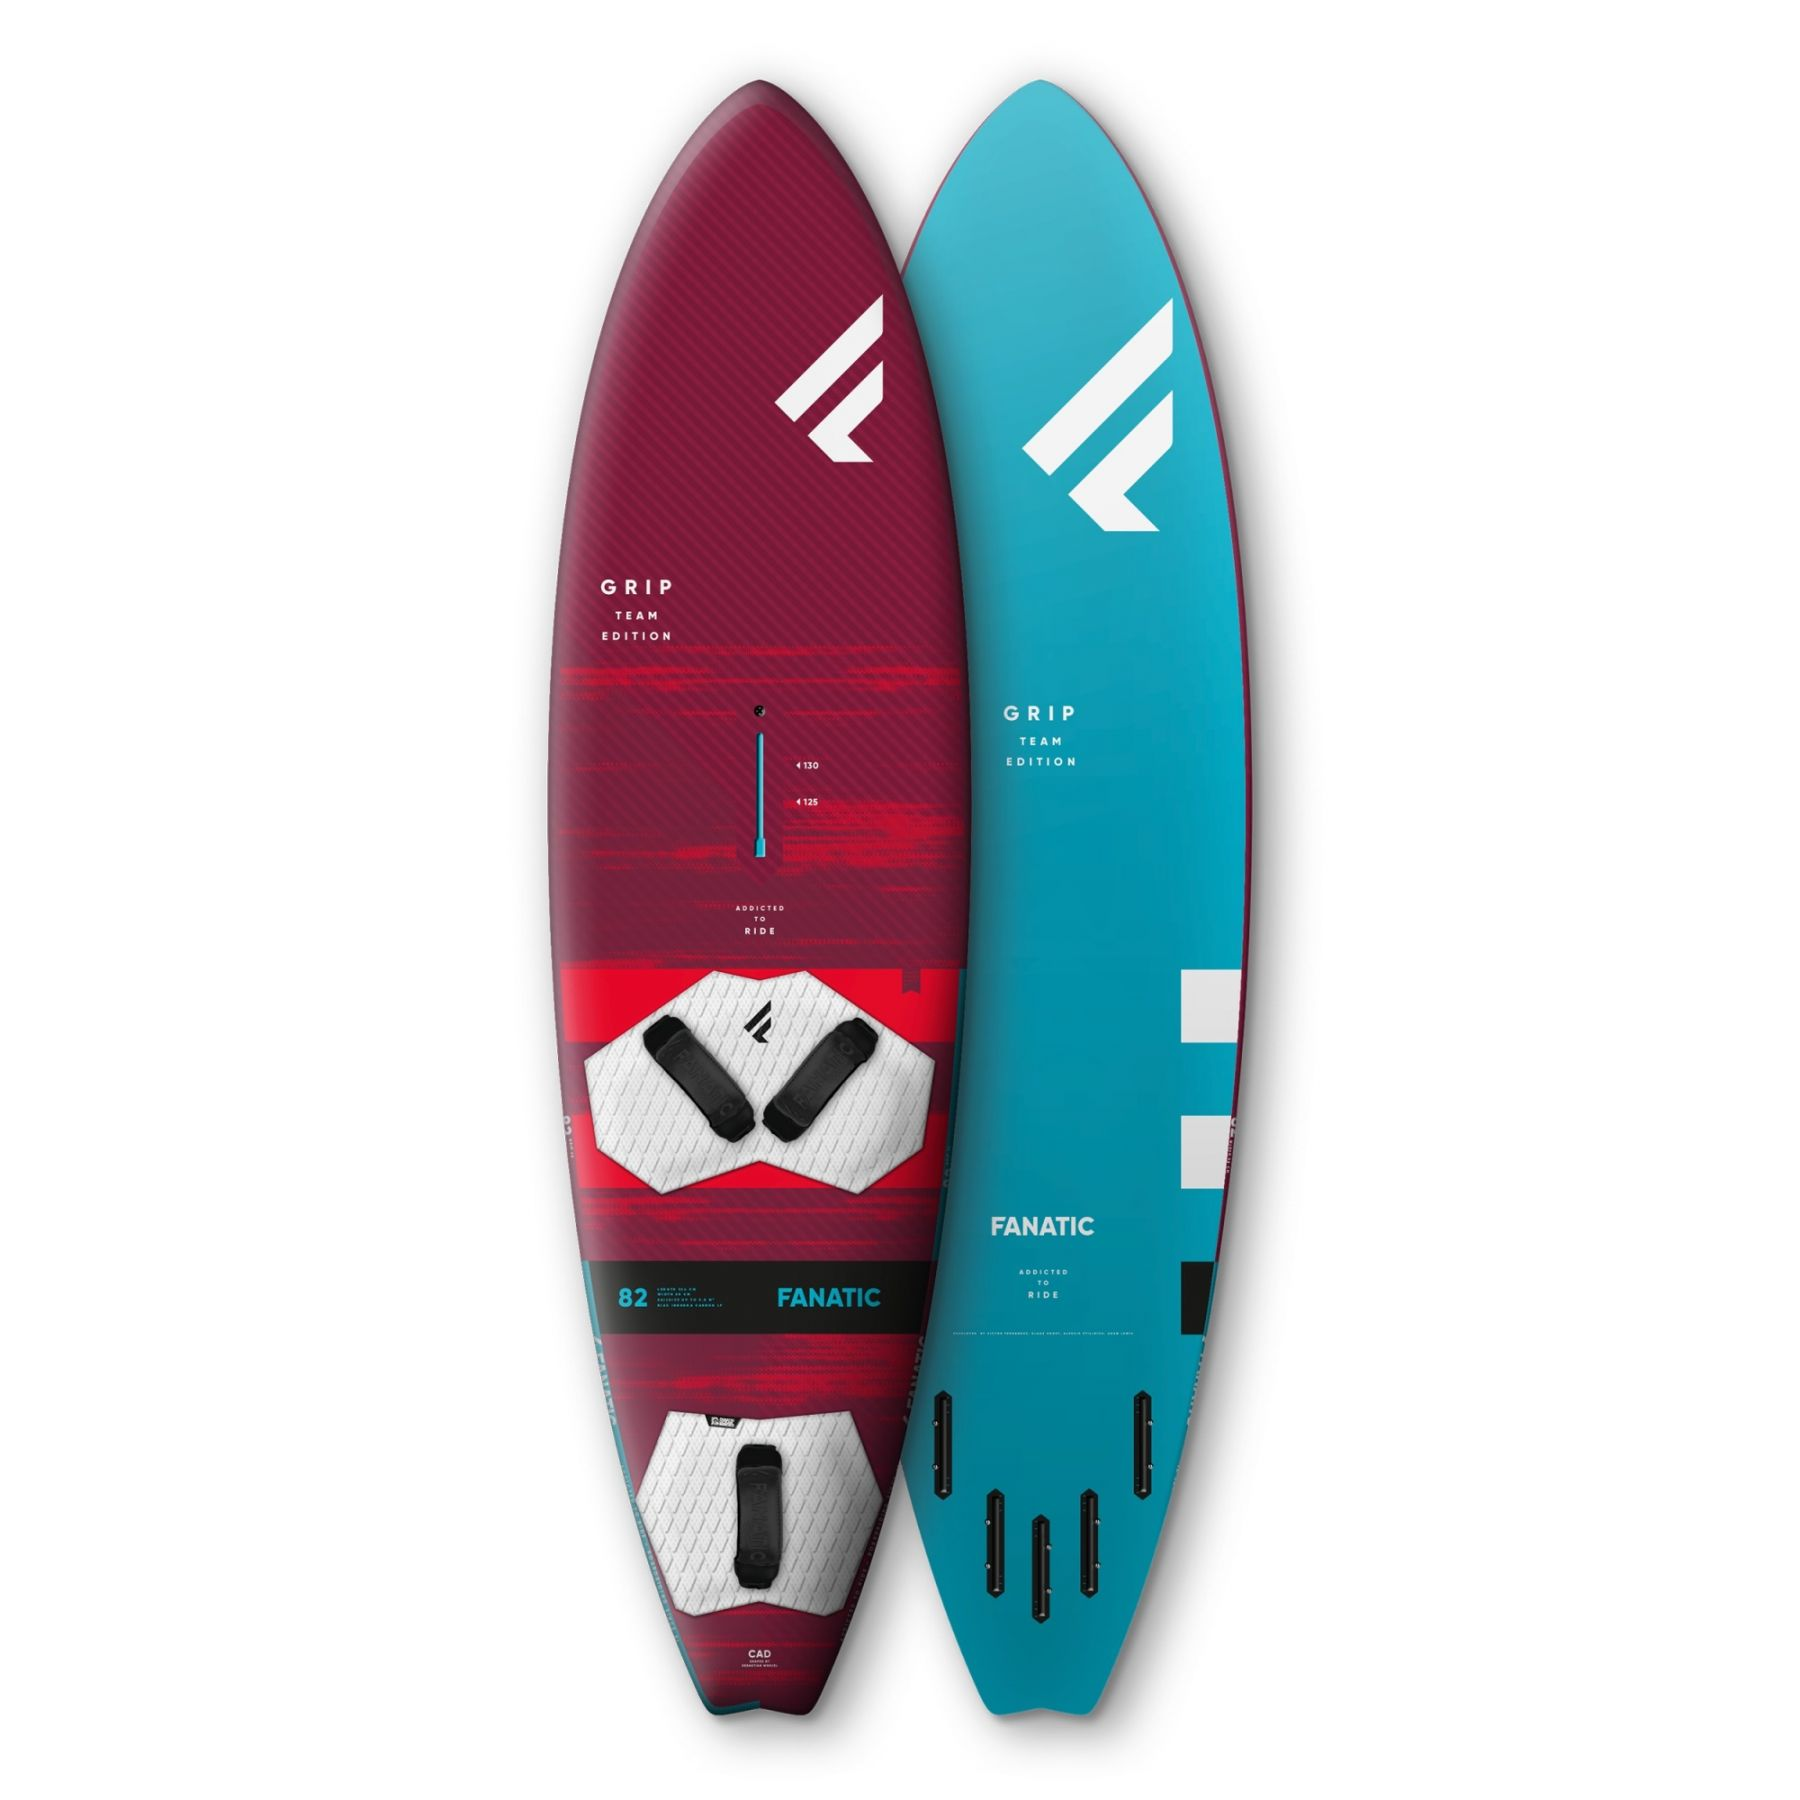 Tabla de windsurf Fanatic Grip T.E